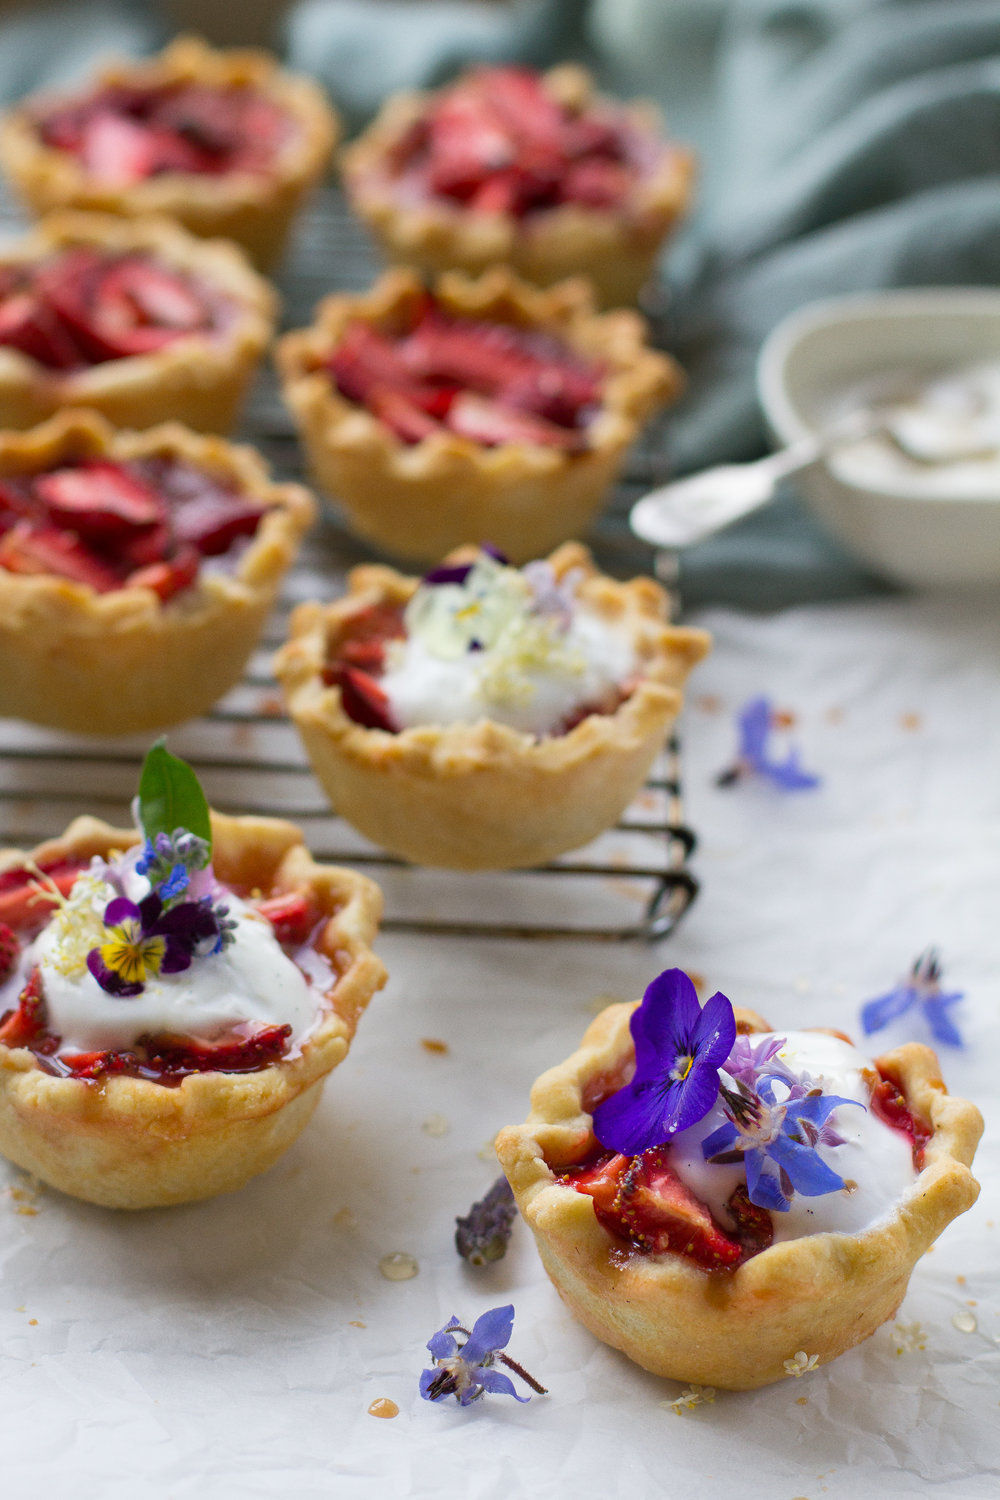 Strawberry and balsamic tarts. Dairy free and vegan, these are a crowd pleasing way to finish a special meal, or a beautiful flourish for your next potluck